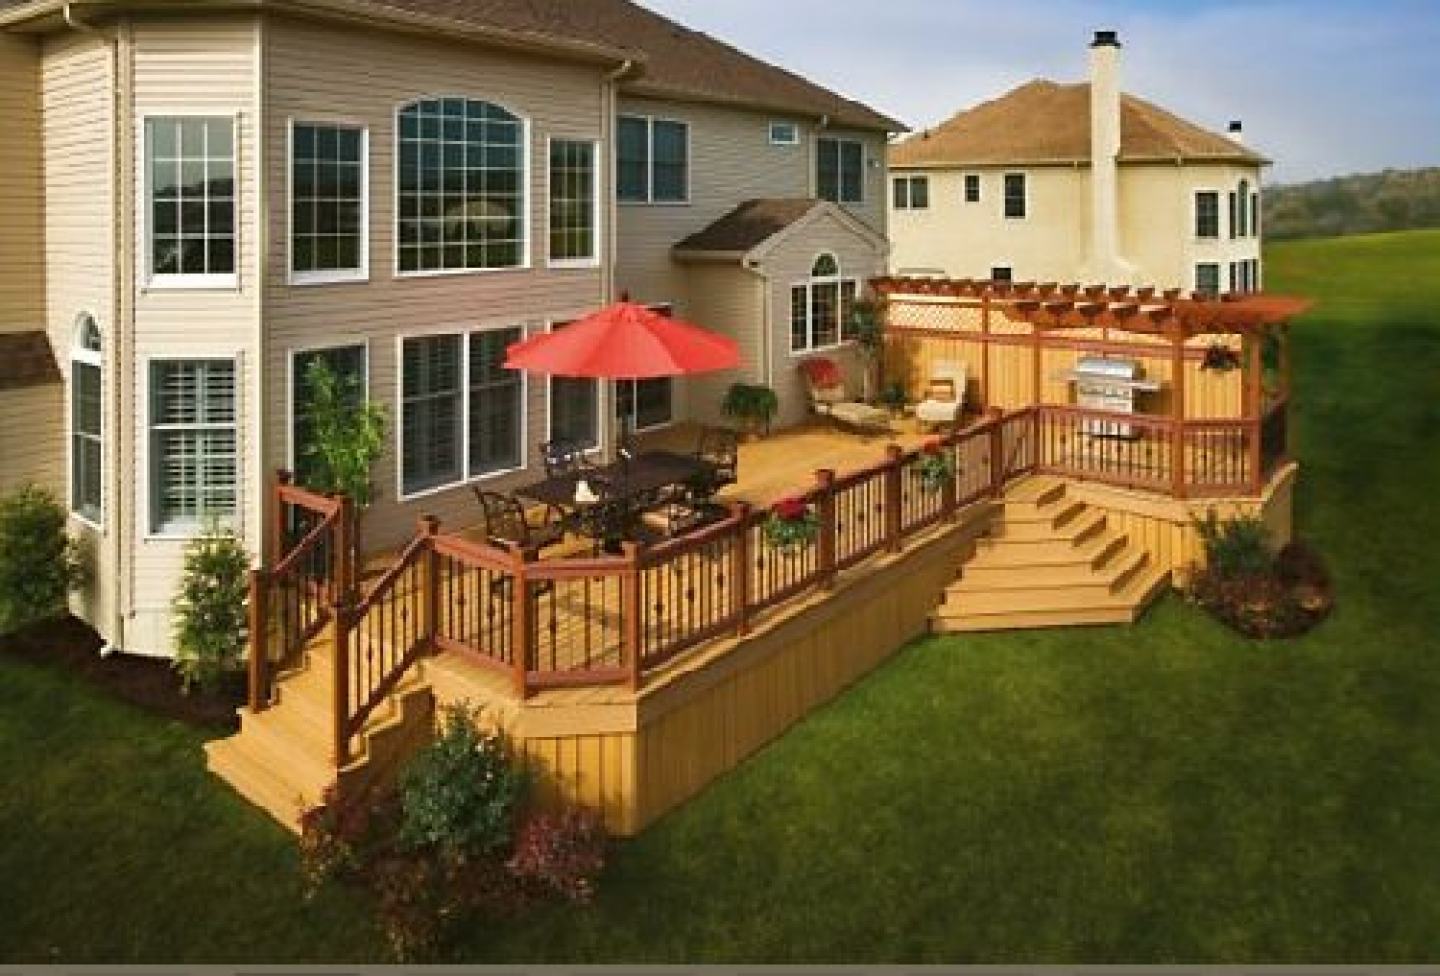 Pictures of deck designs ideas